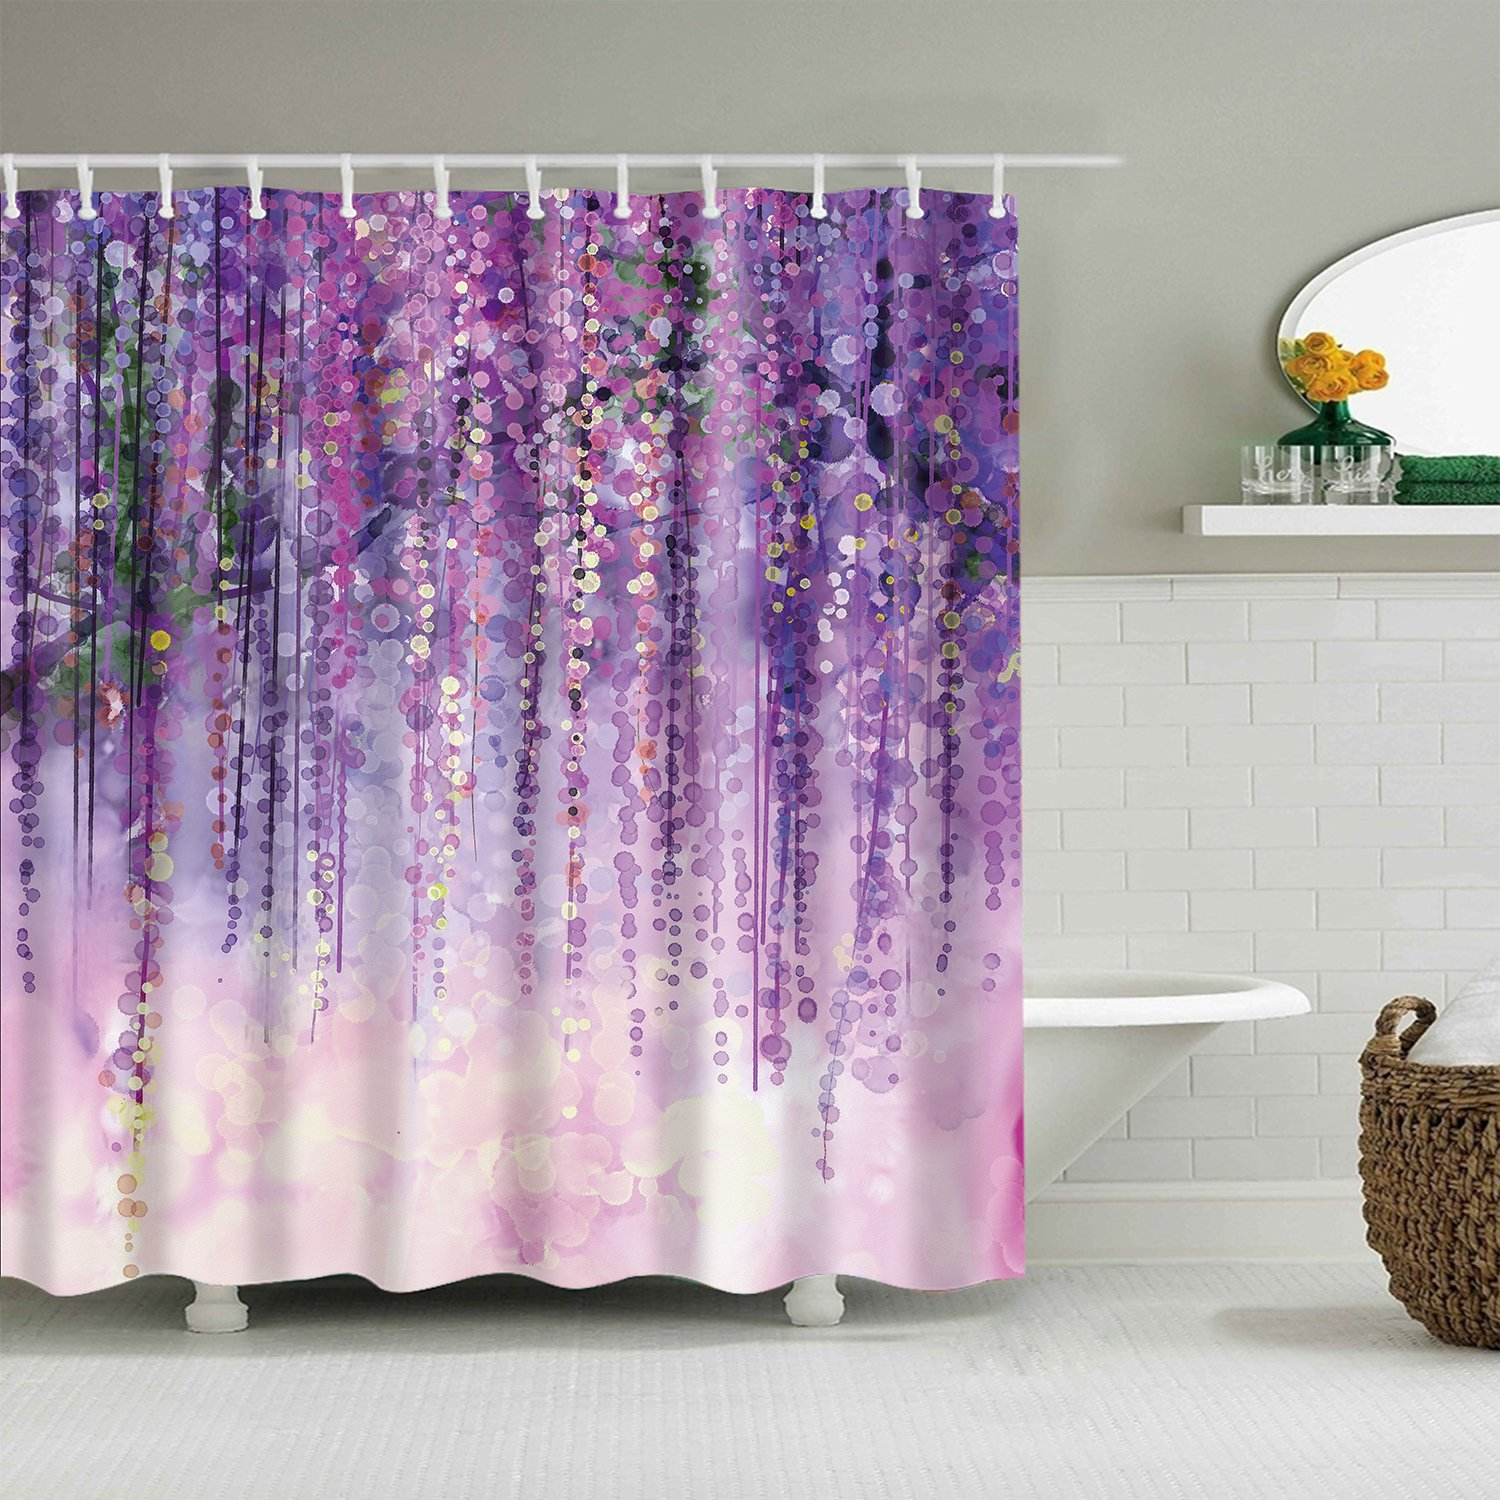 Bokeh Violet Color Ivy Flower In Blossom Wisteria Shower Curtain